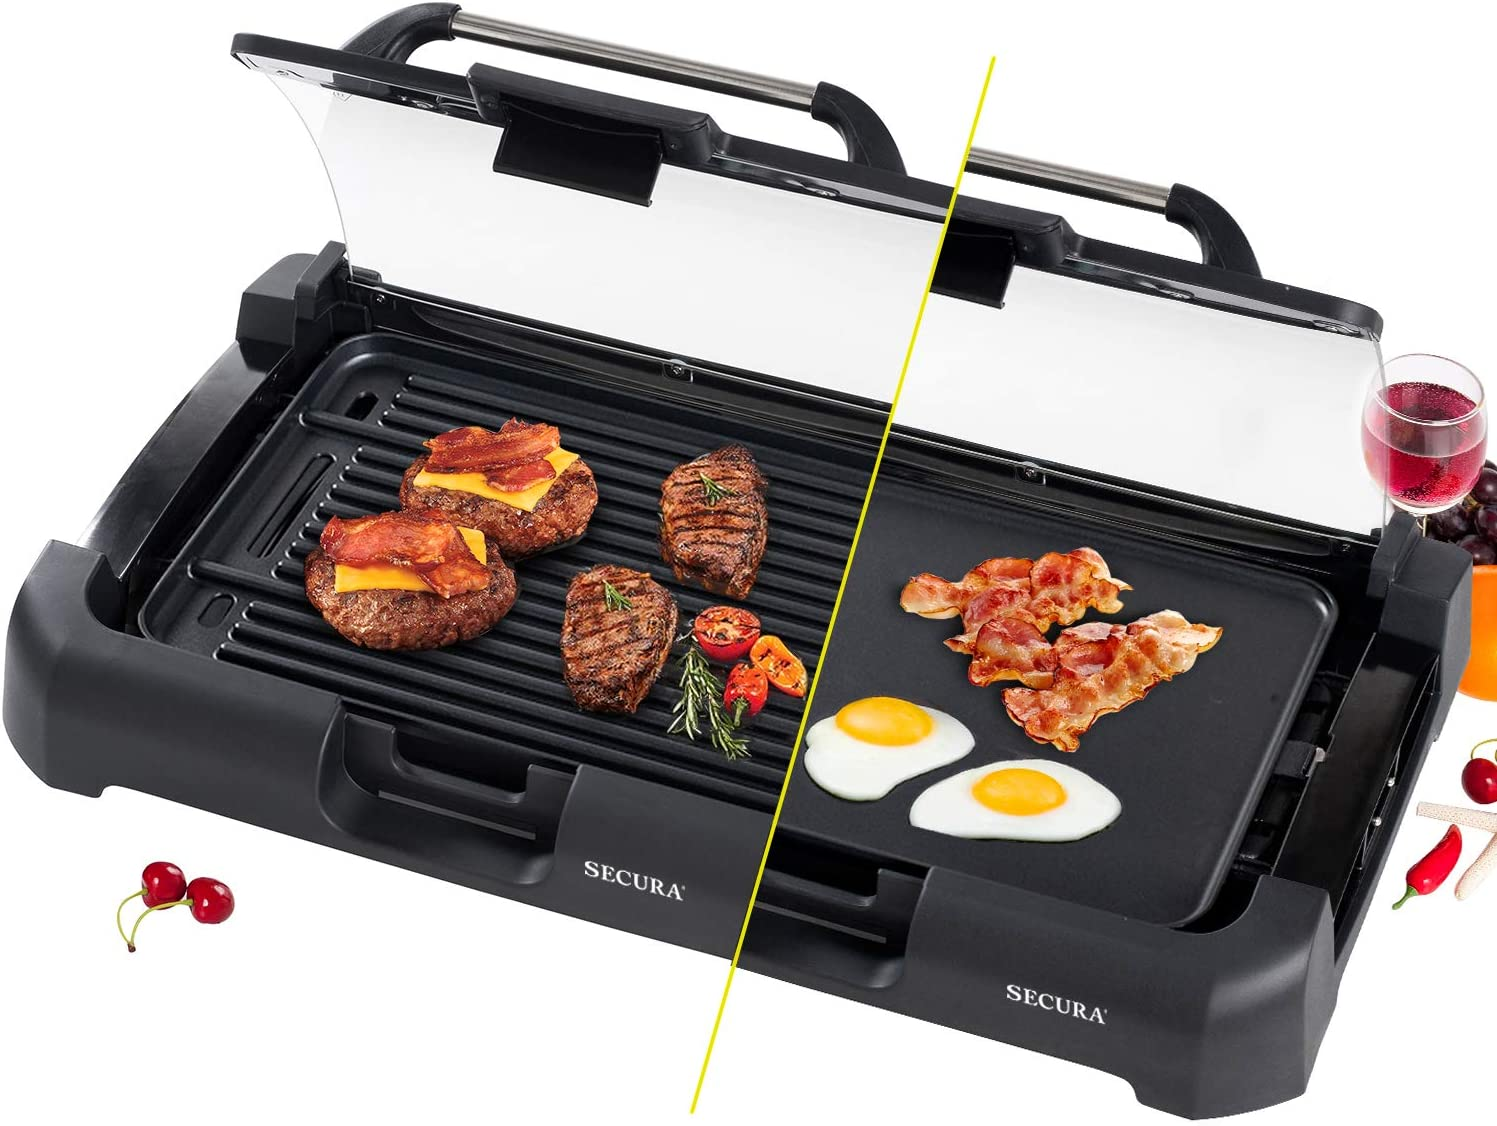 The Secura Smokeless Indoor Grill Electric Griddle Review